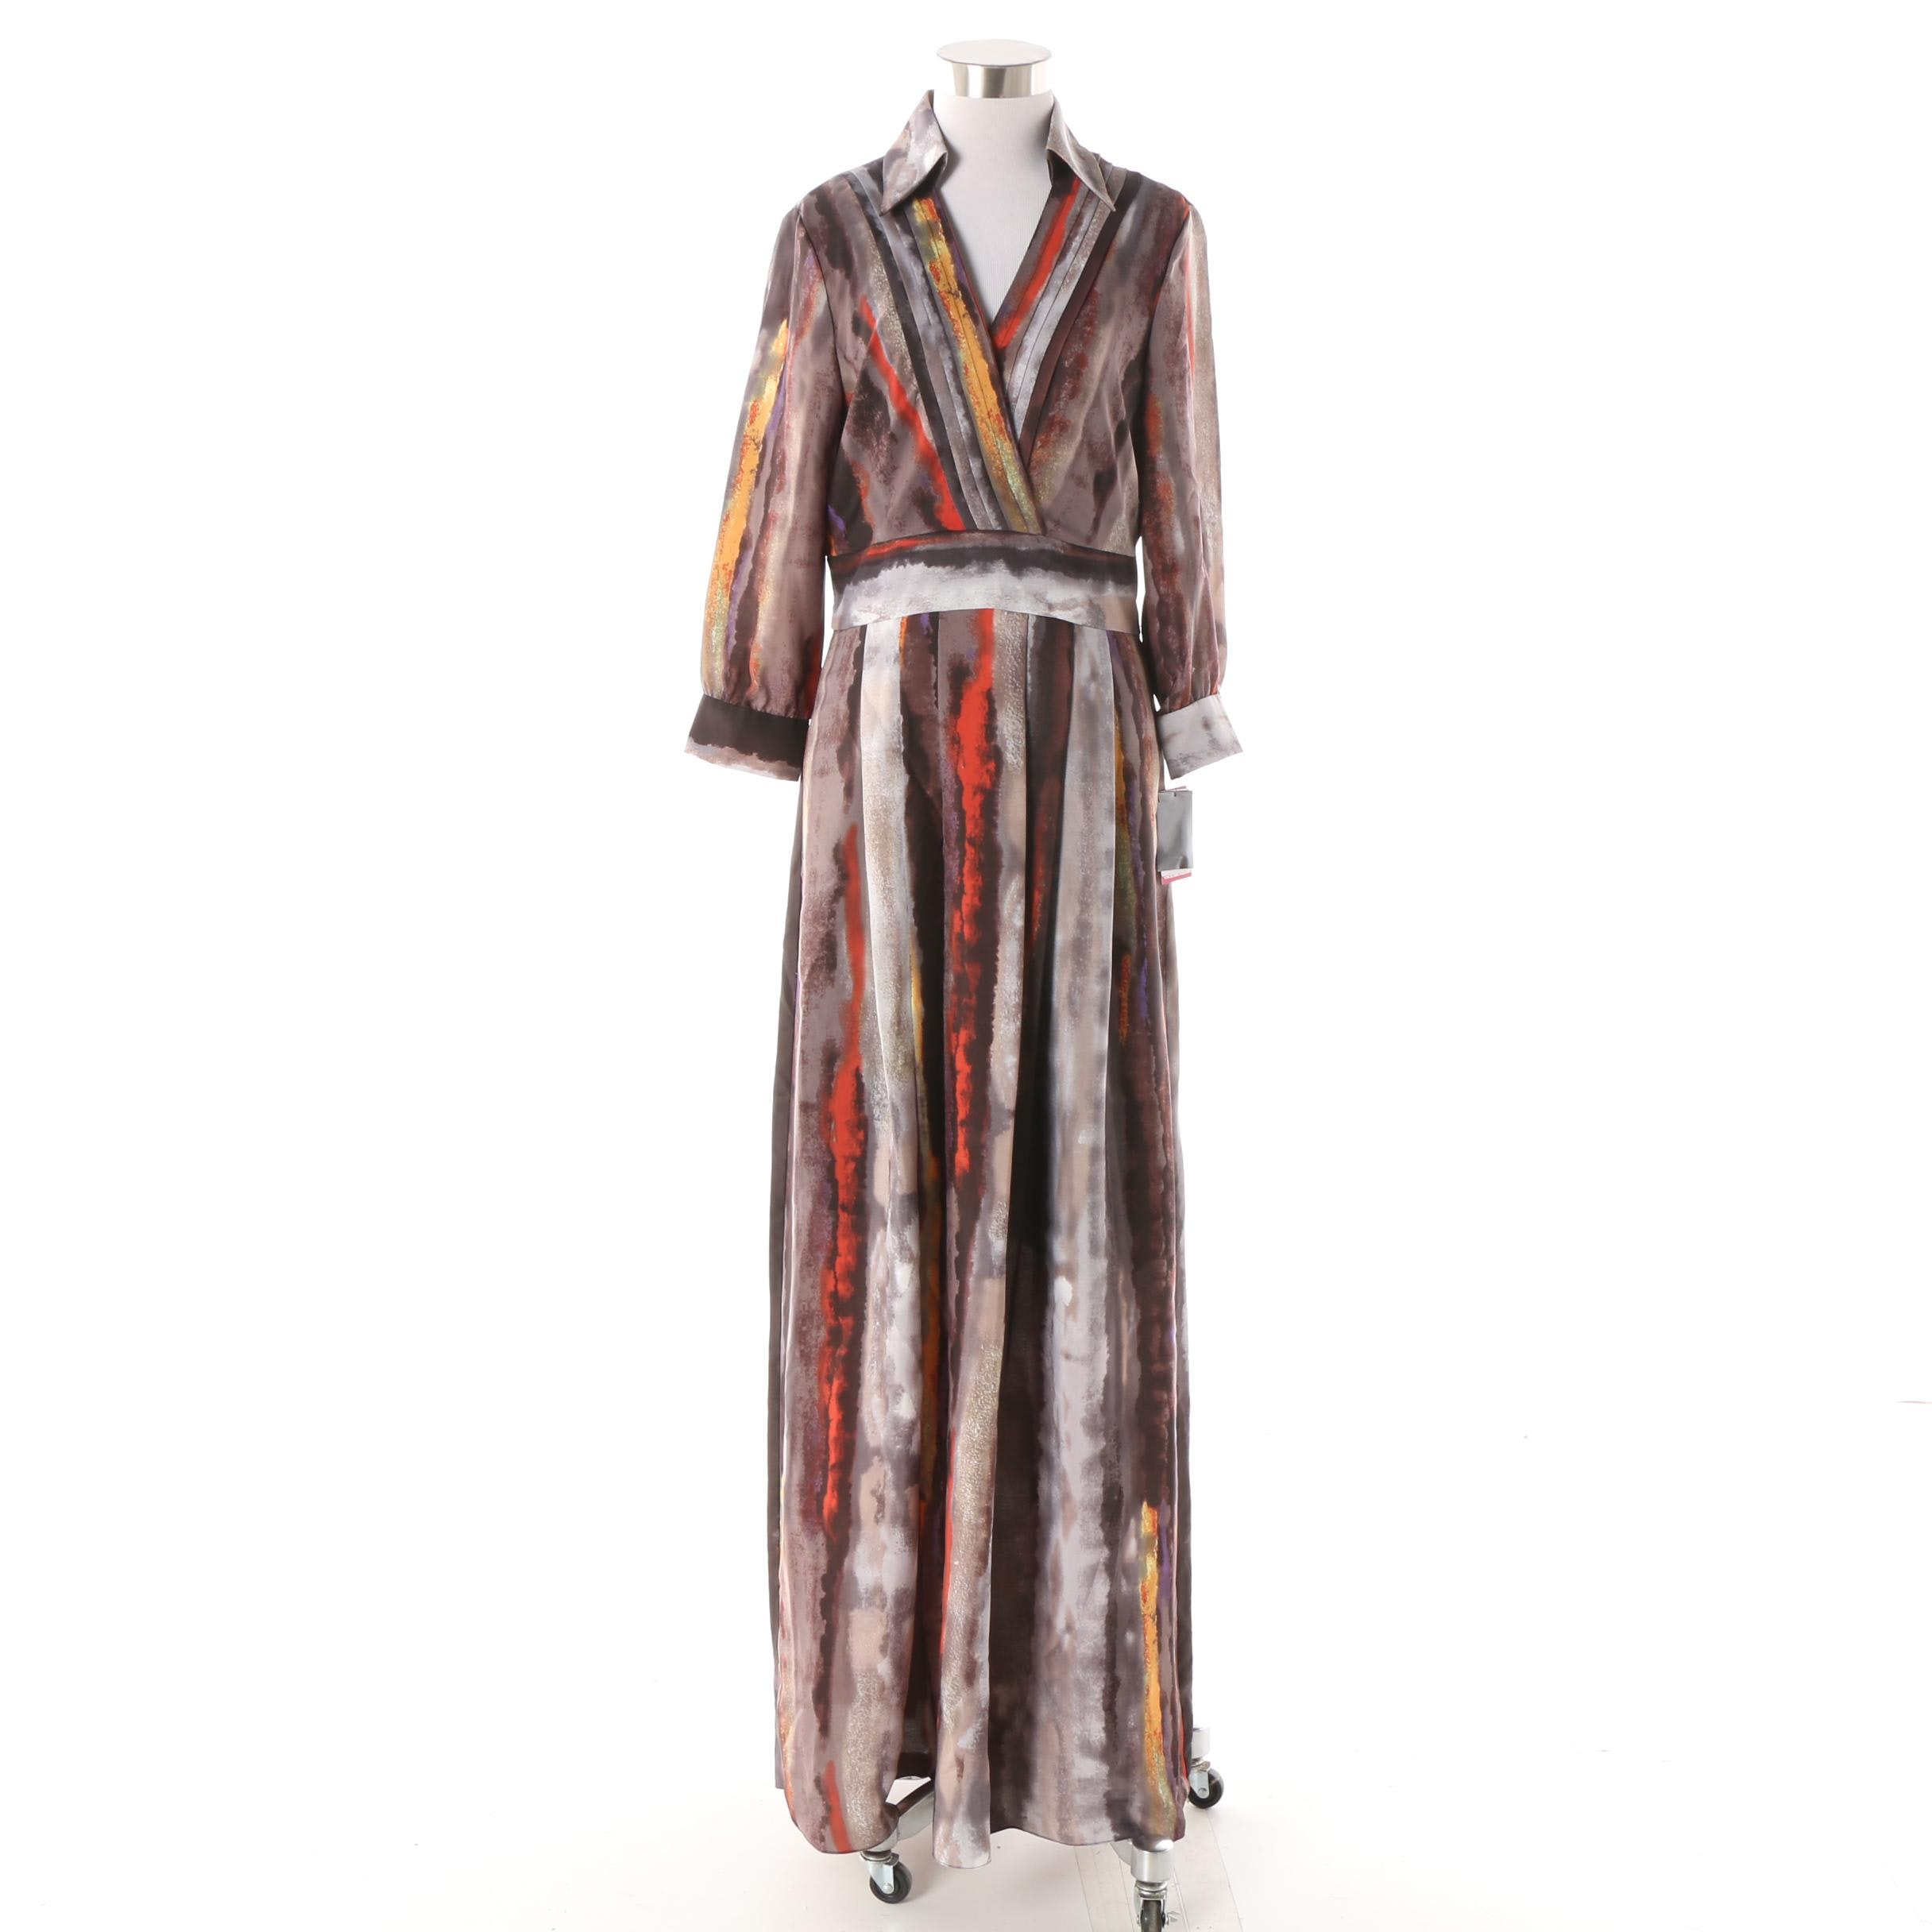 Vince Camuto Full-Length Printed Dress